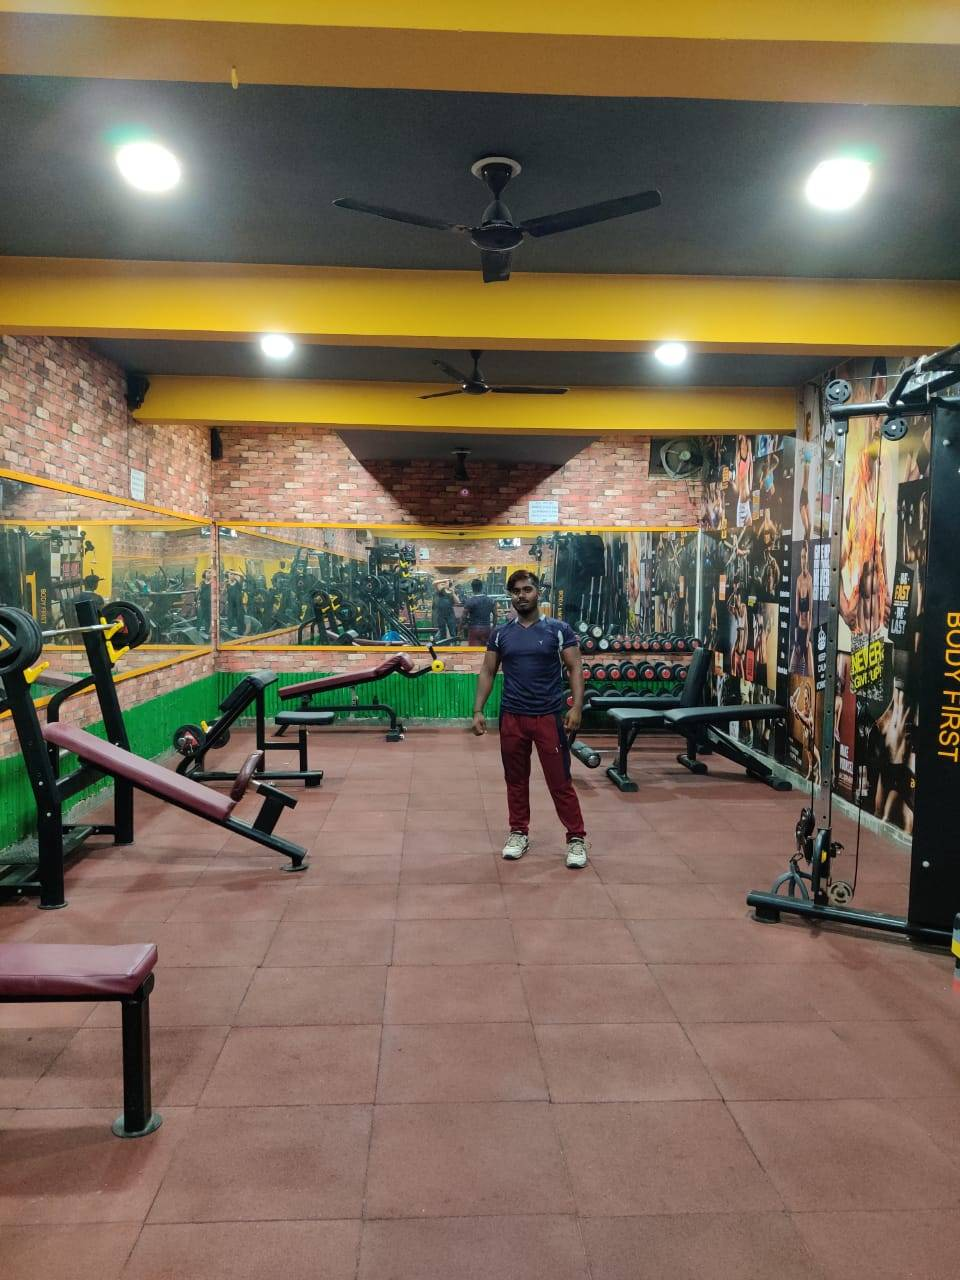 Noida-Sector-20-Body-first-gym_959_OTU5_MTEyNzg